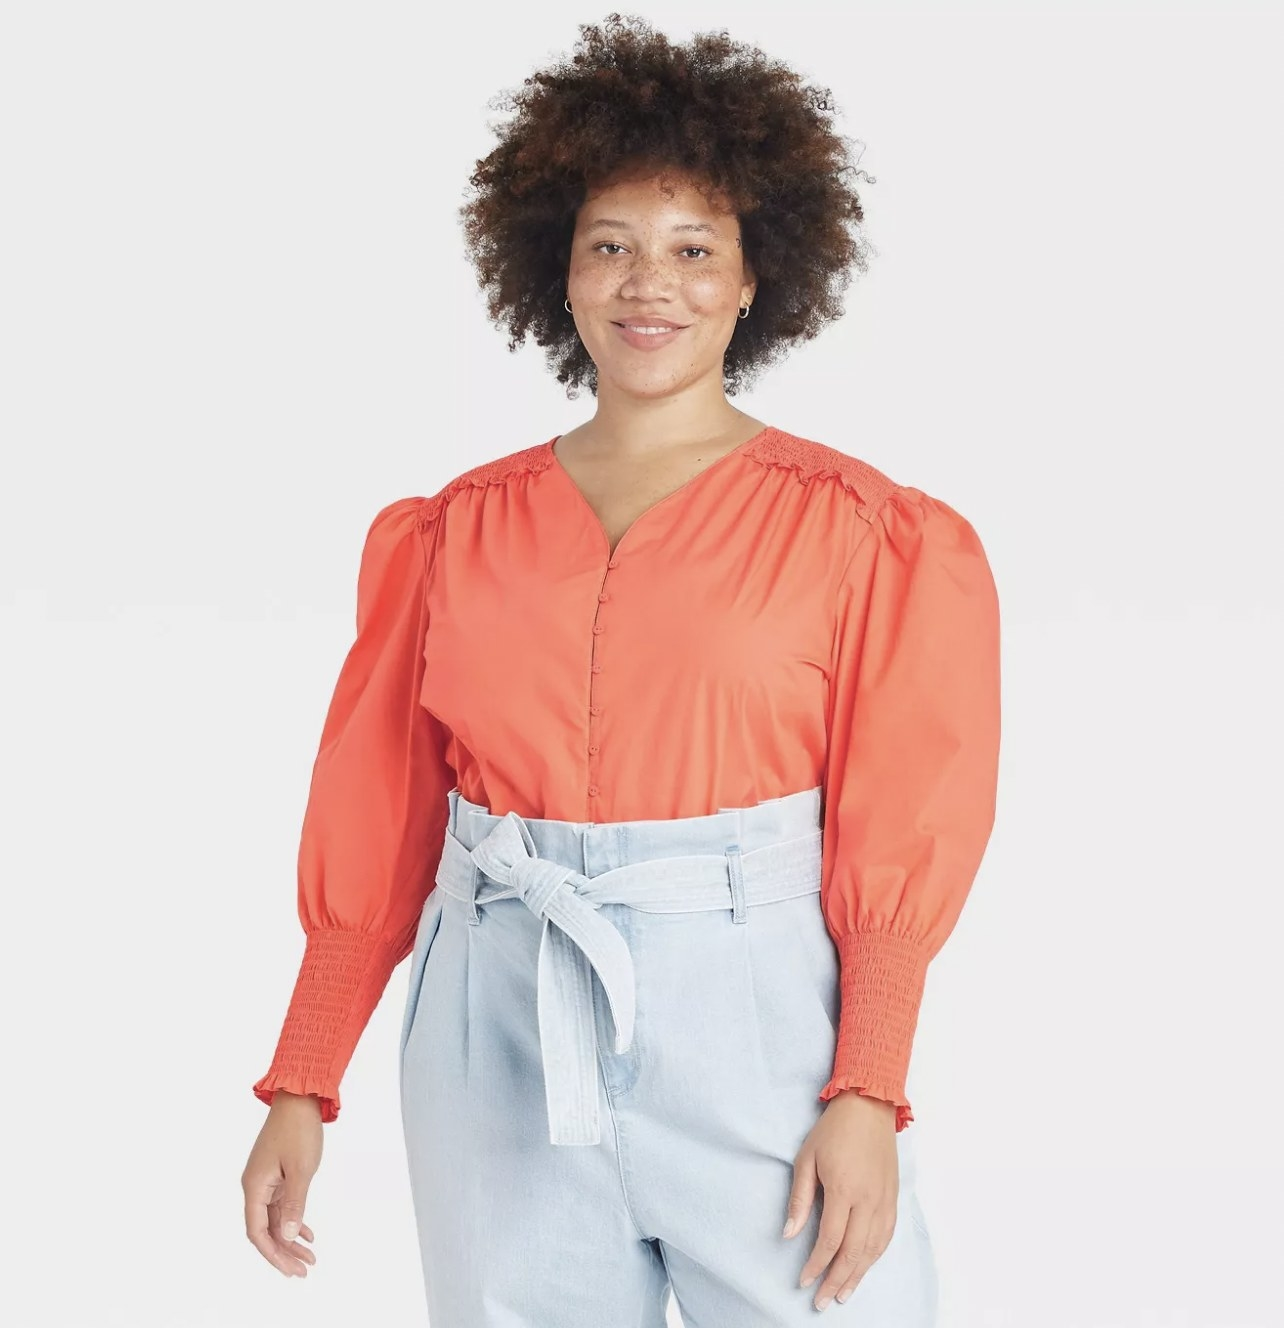 A model wearing an orange, V-neck cotton shirt with puffed sleeves